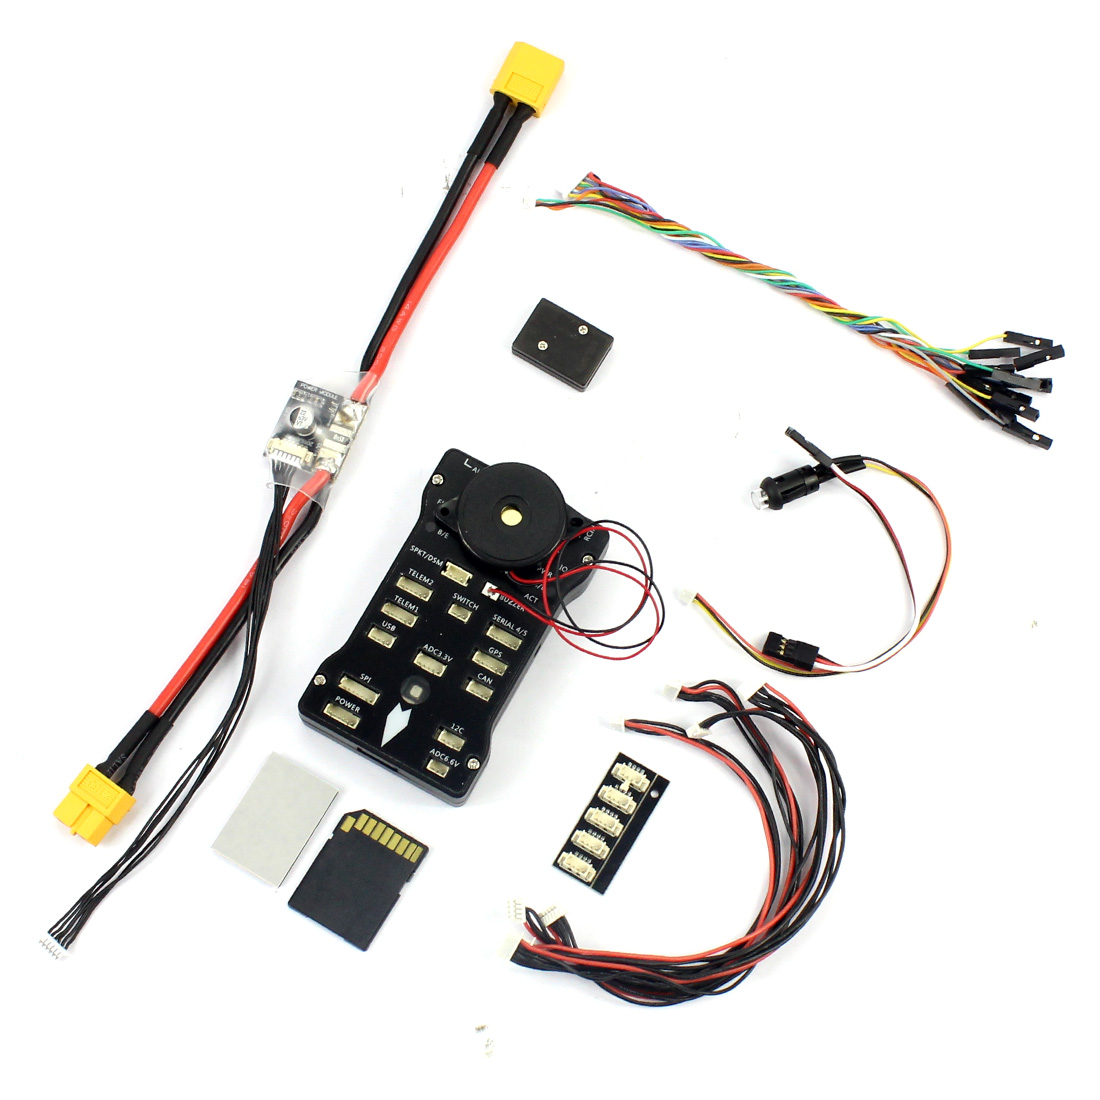 DIY RC FPV Drone Kit 4-axel Quadcopter med F450 450 Ram PIXHAWK PXI